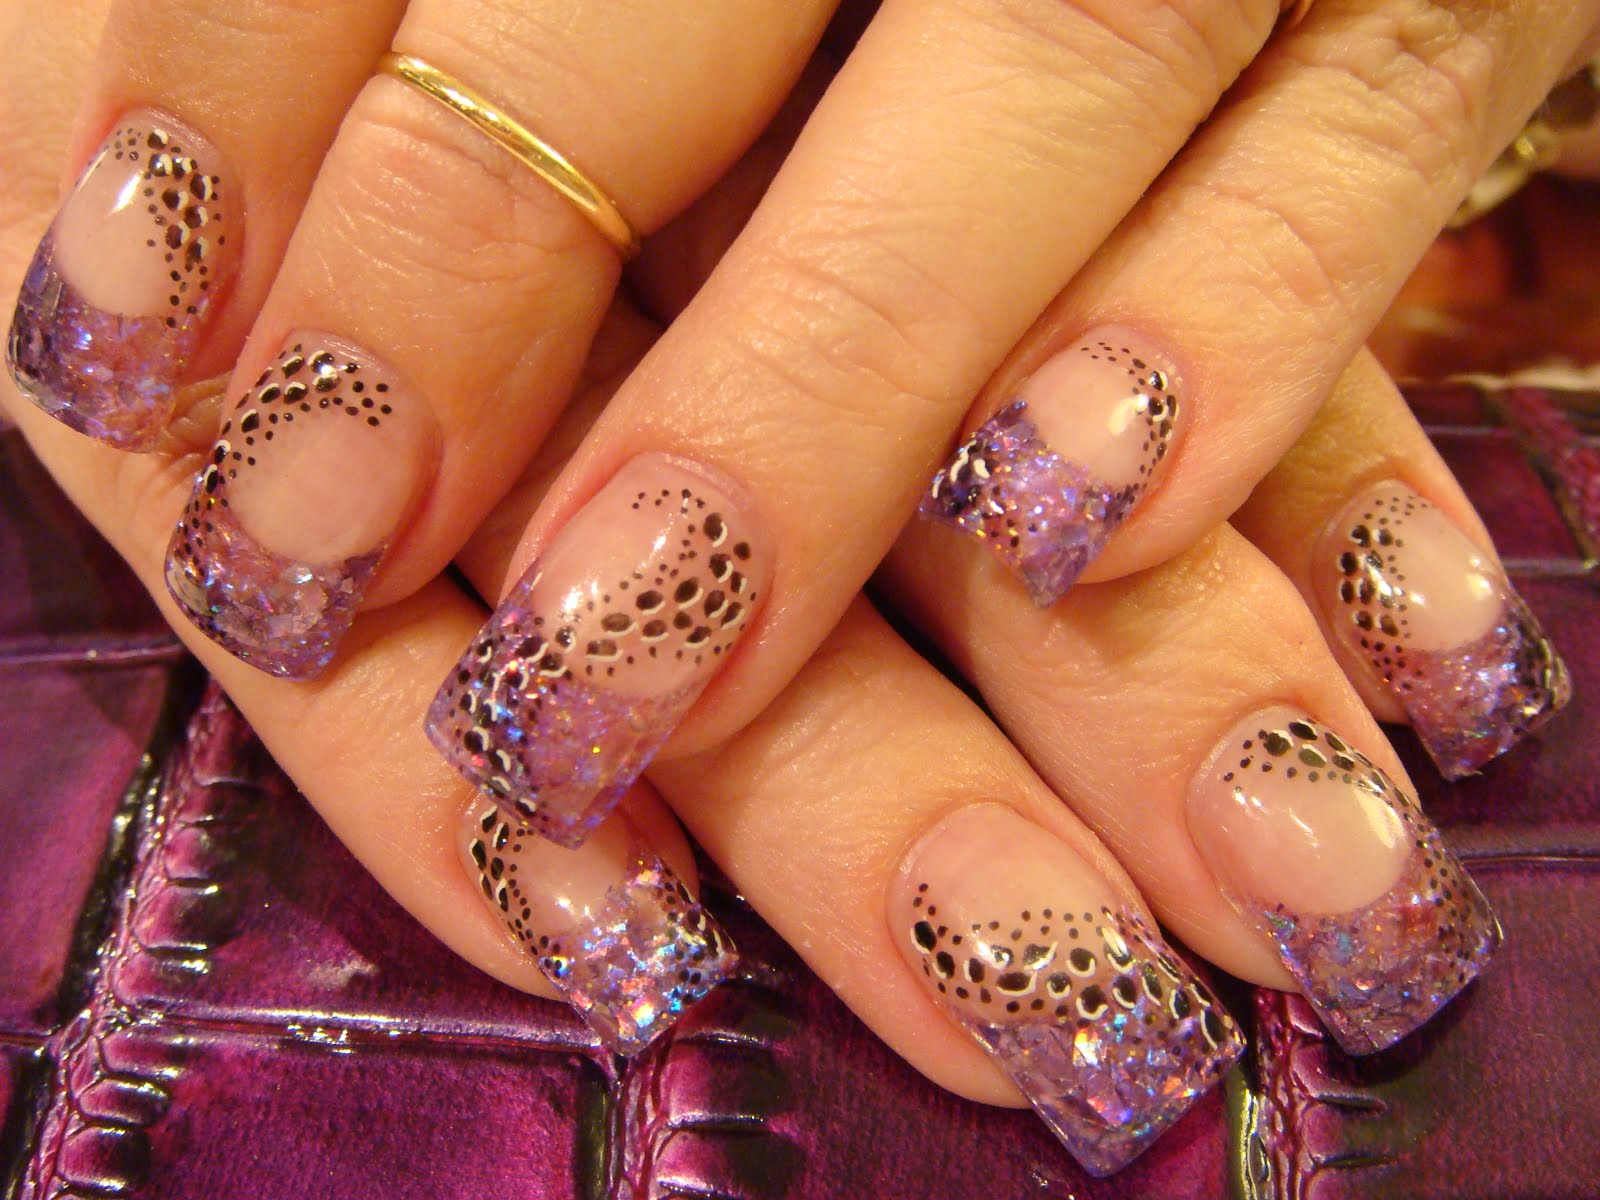 Fake nails designs pictures 2015 reasabaidhean the amazing fake nails designs pictures digital imagery prinsesfo Choice Image